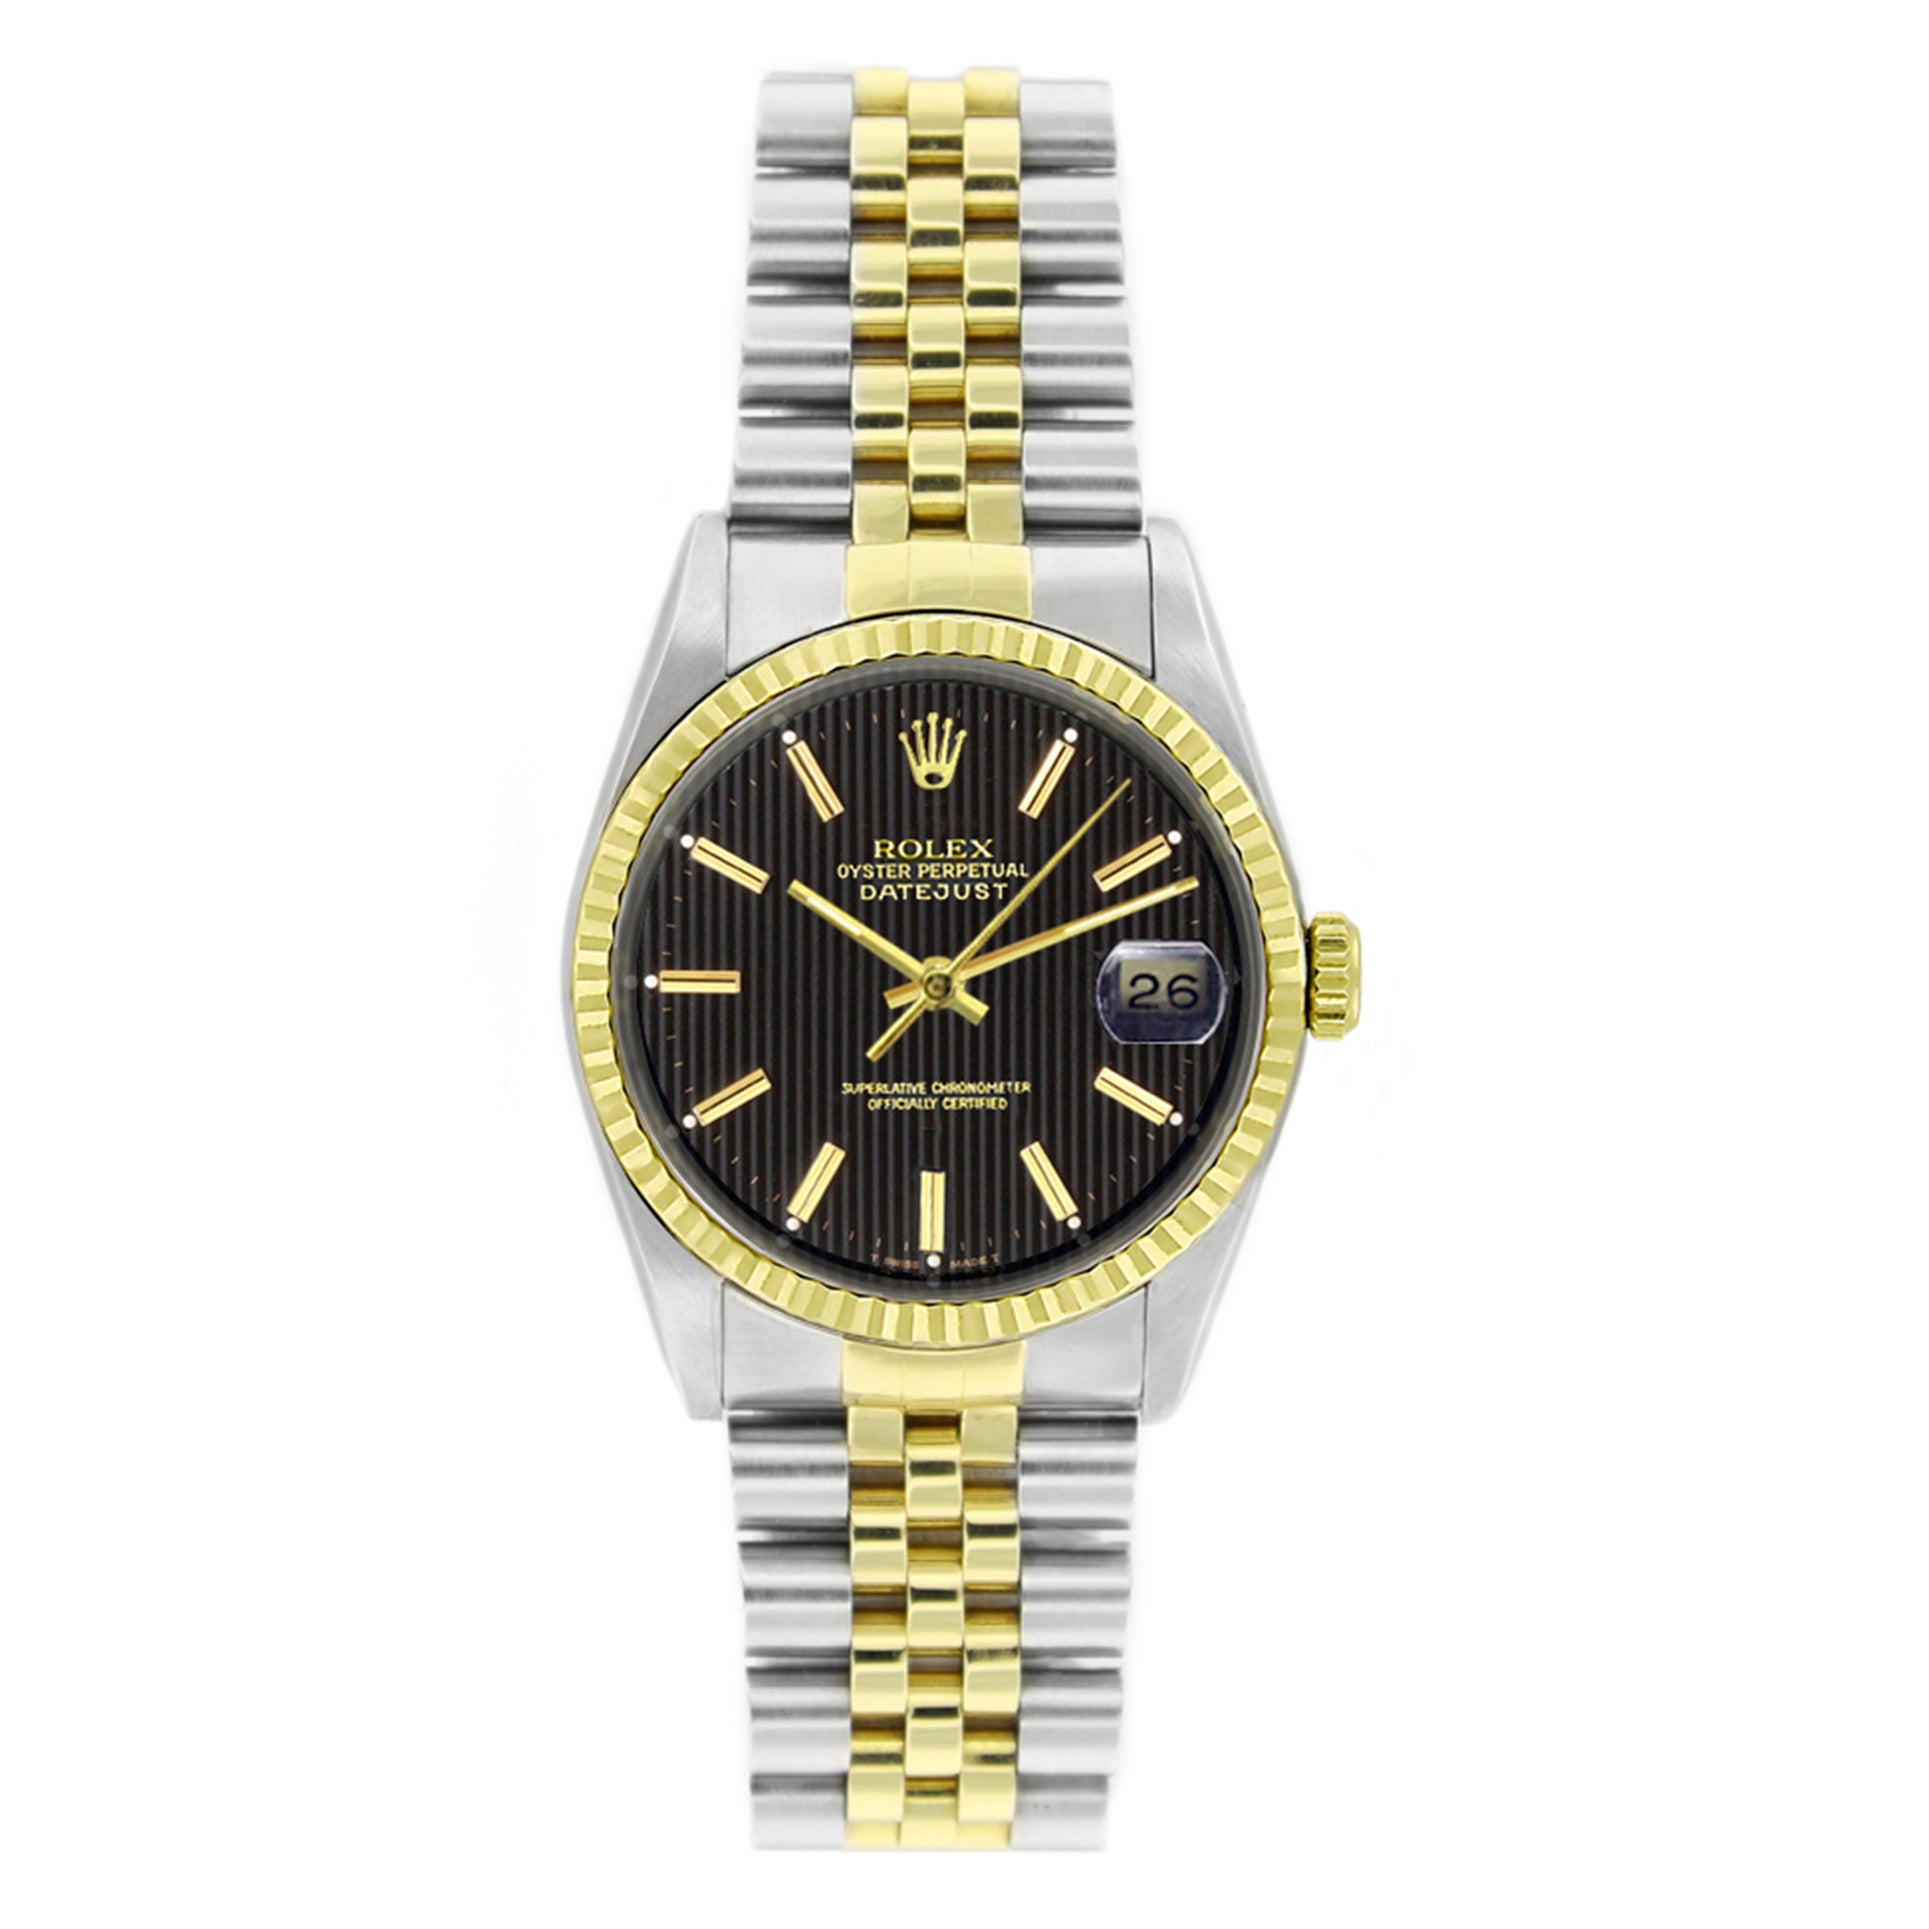 c181c6811f0 Shop Pre-owned Rolex Men s Datejust Two-tone 18k Gold and Stainless Steel  Watch - Free Shipping Today - Overstock - 9310133